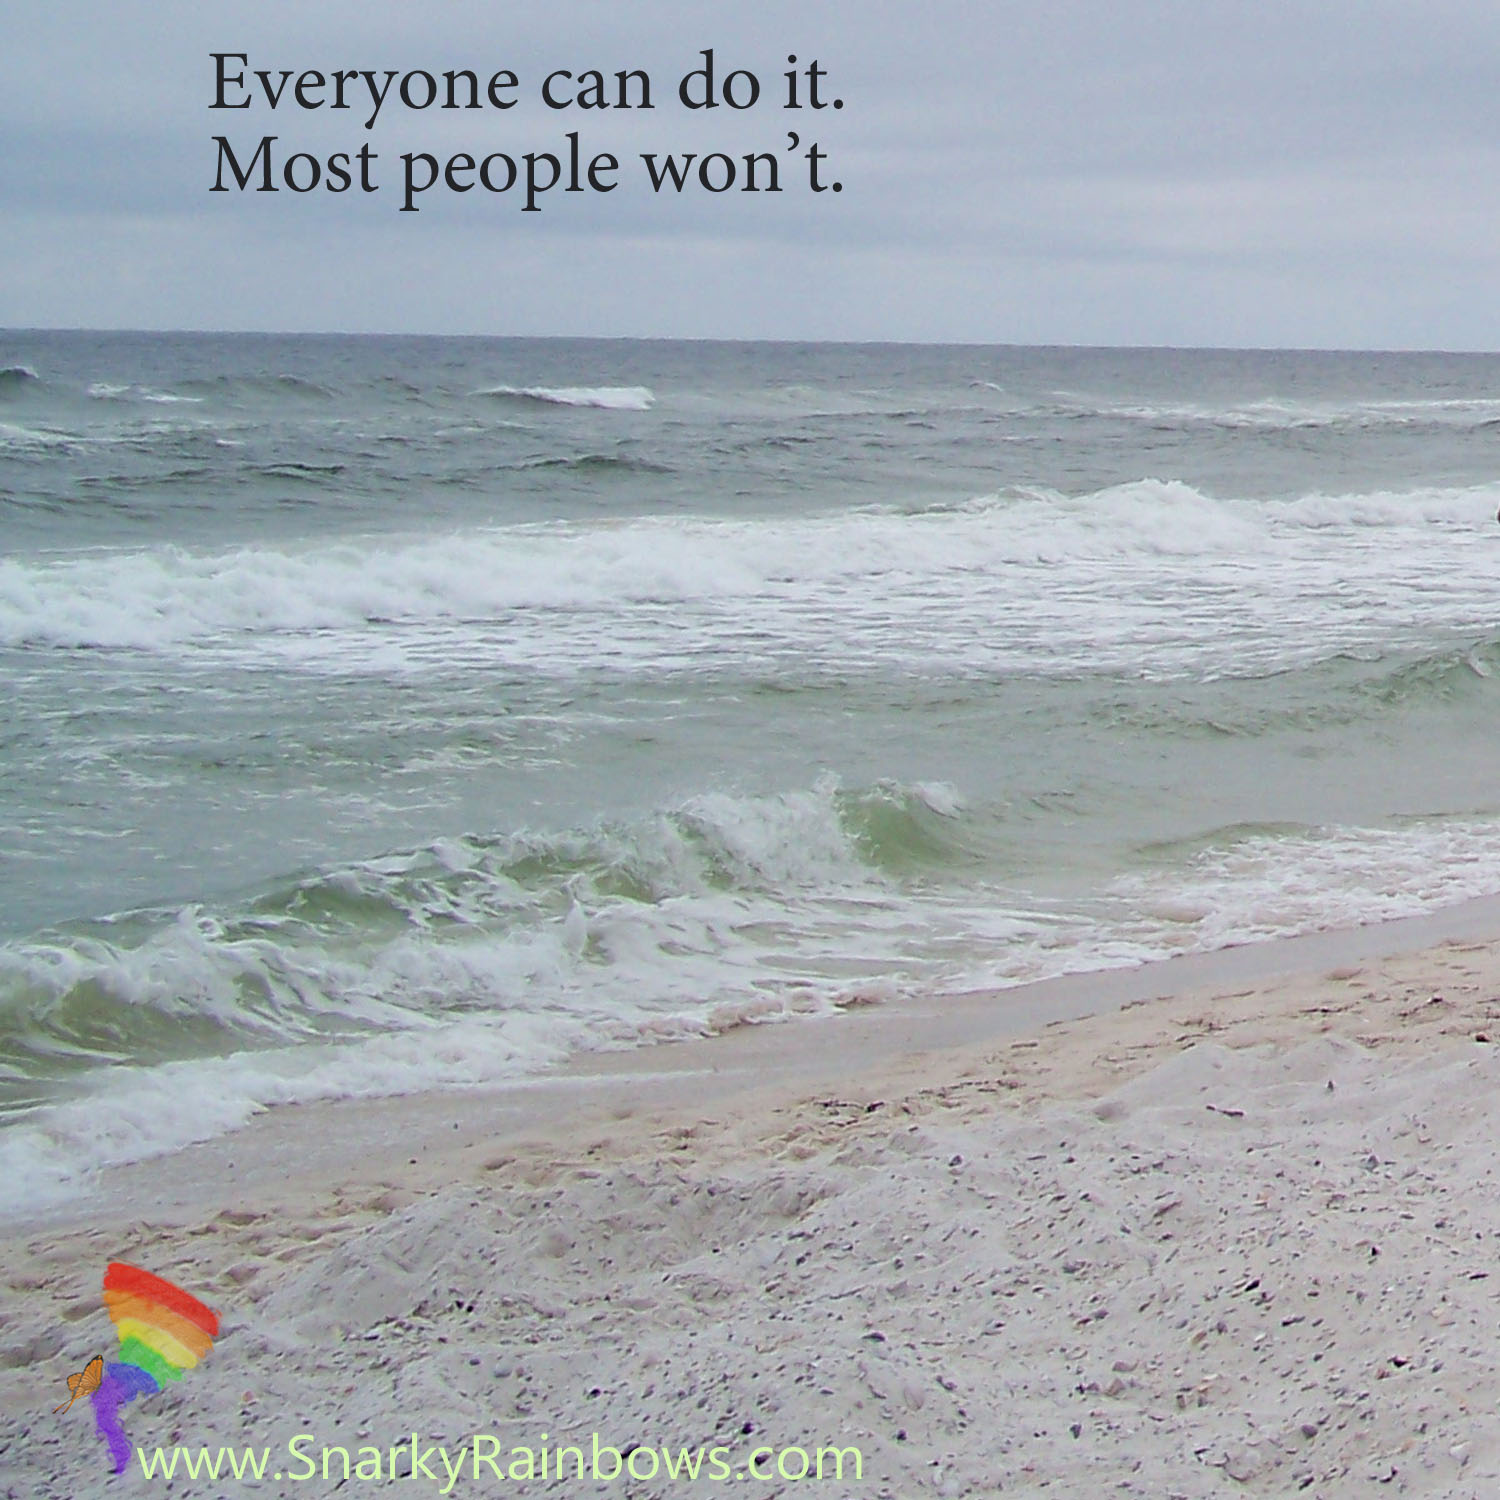 quote of the day - everyone can